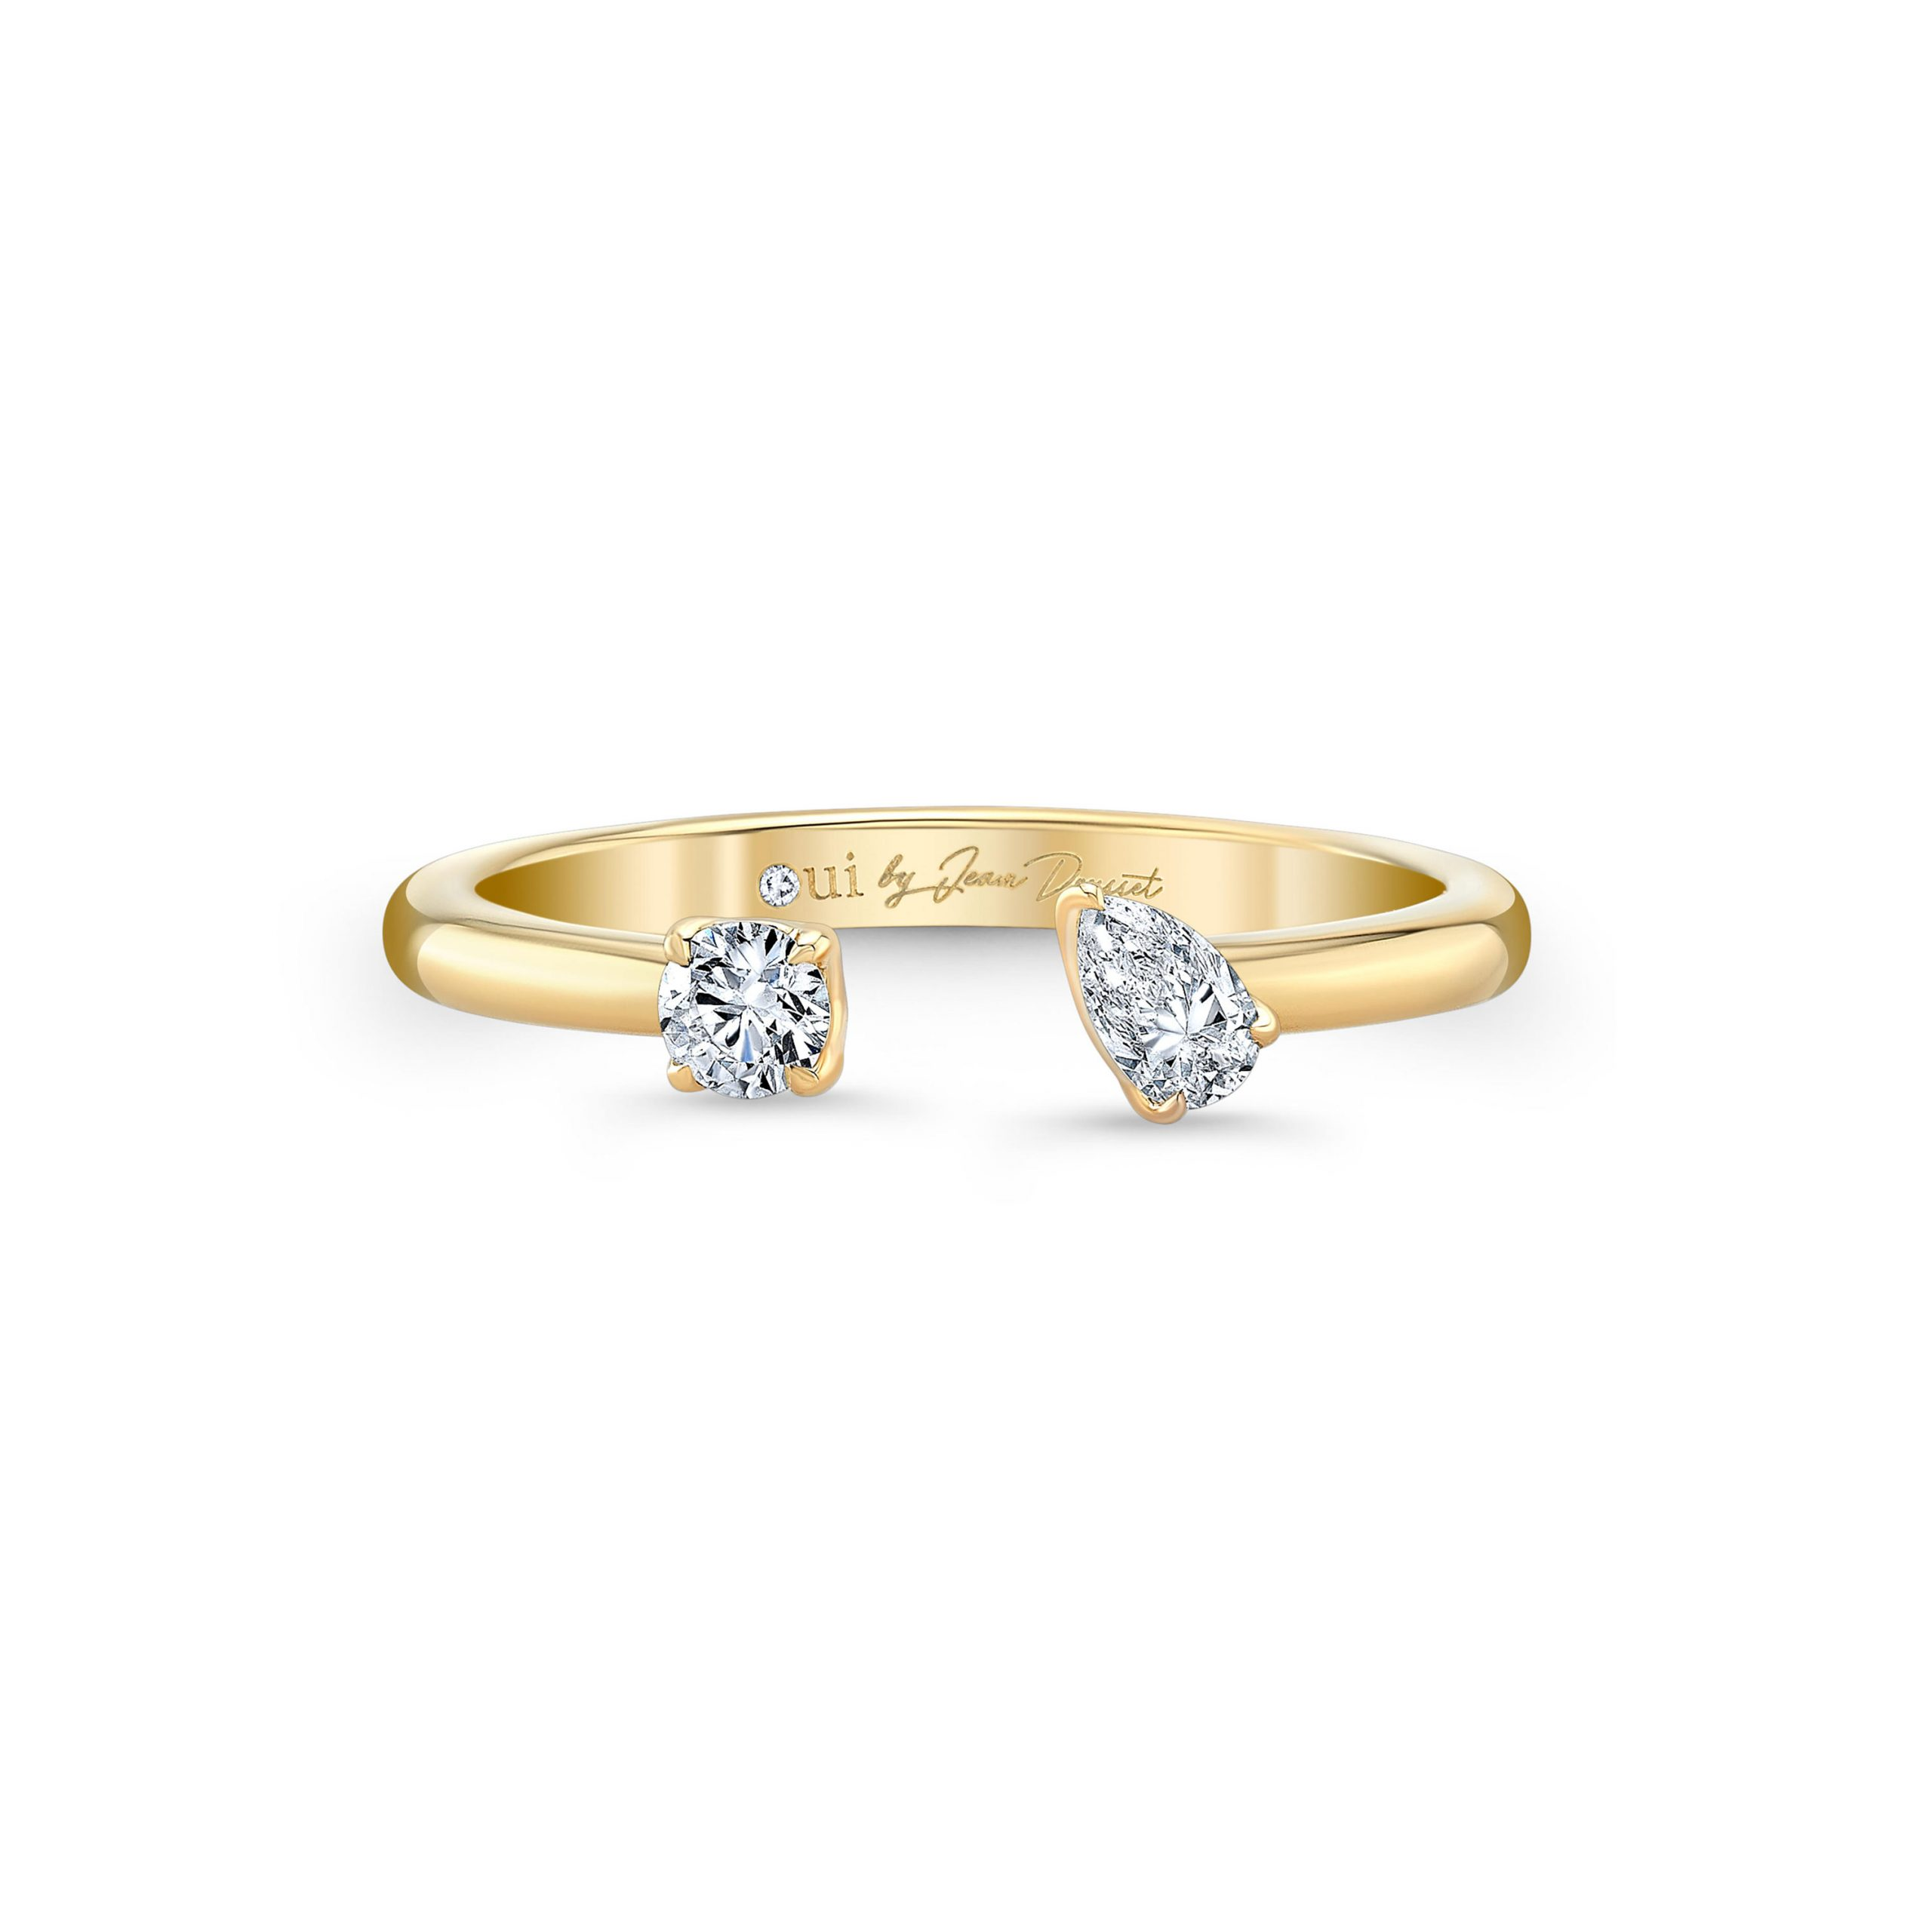 Celeste Mixed Diamond Open Ring, round brilliant & pear in 18k Yellow Gold Front View by Oui by Jean Dousset